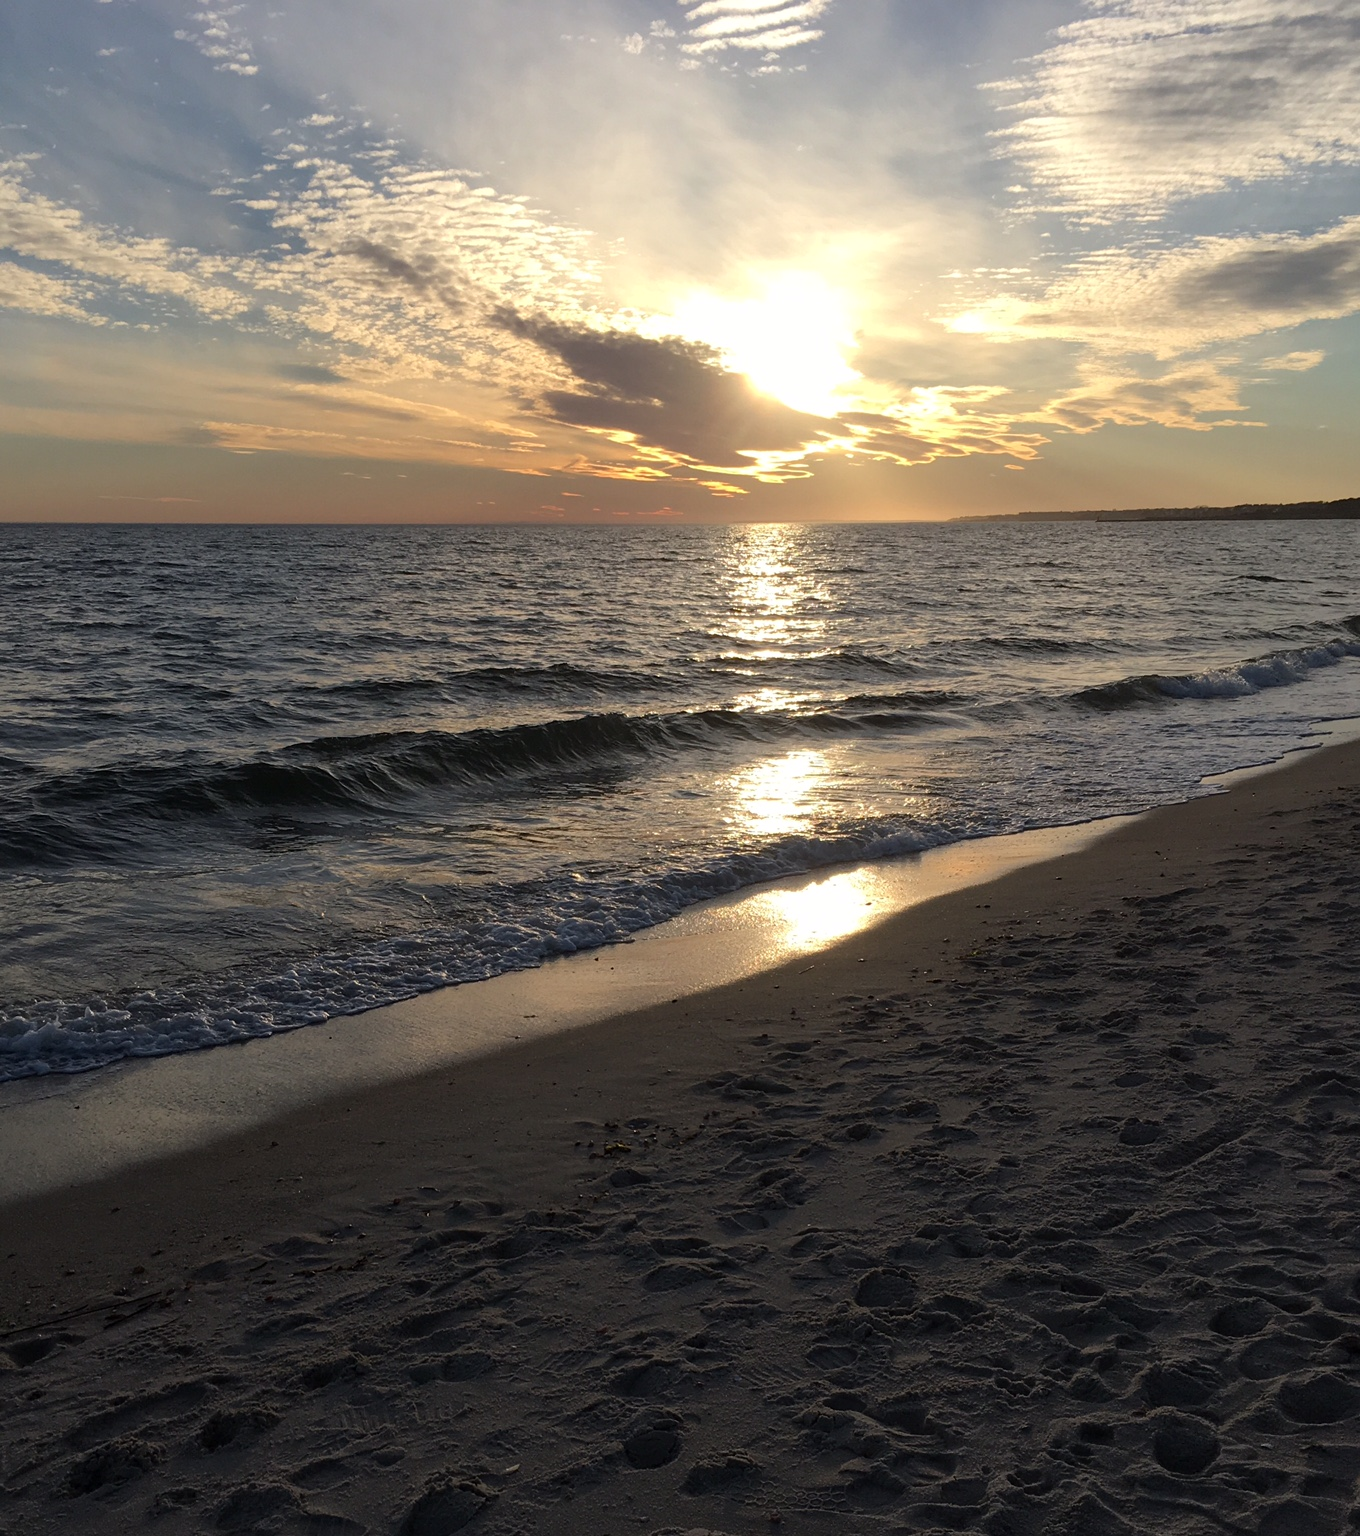 A picture of the beach at Cape Cod, during the sunset.